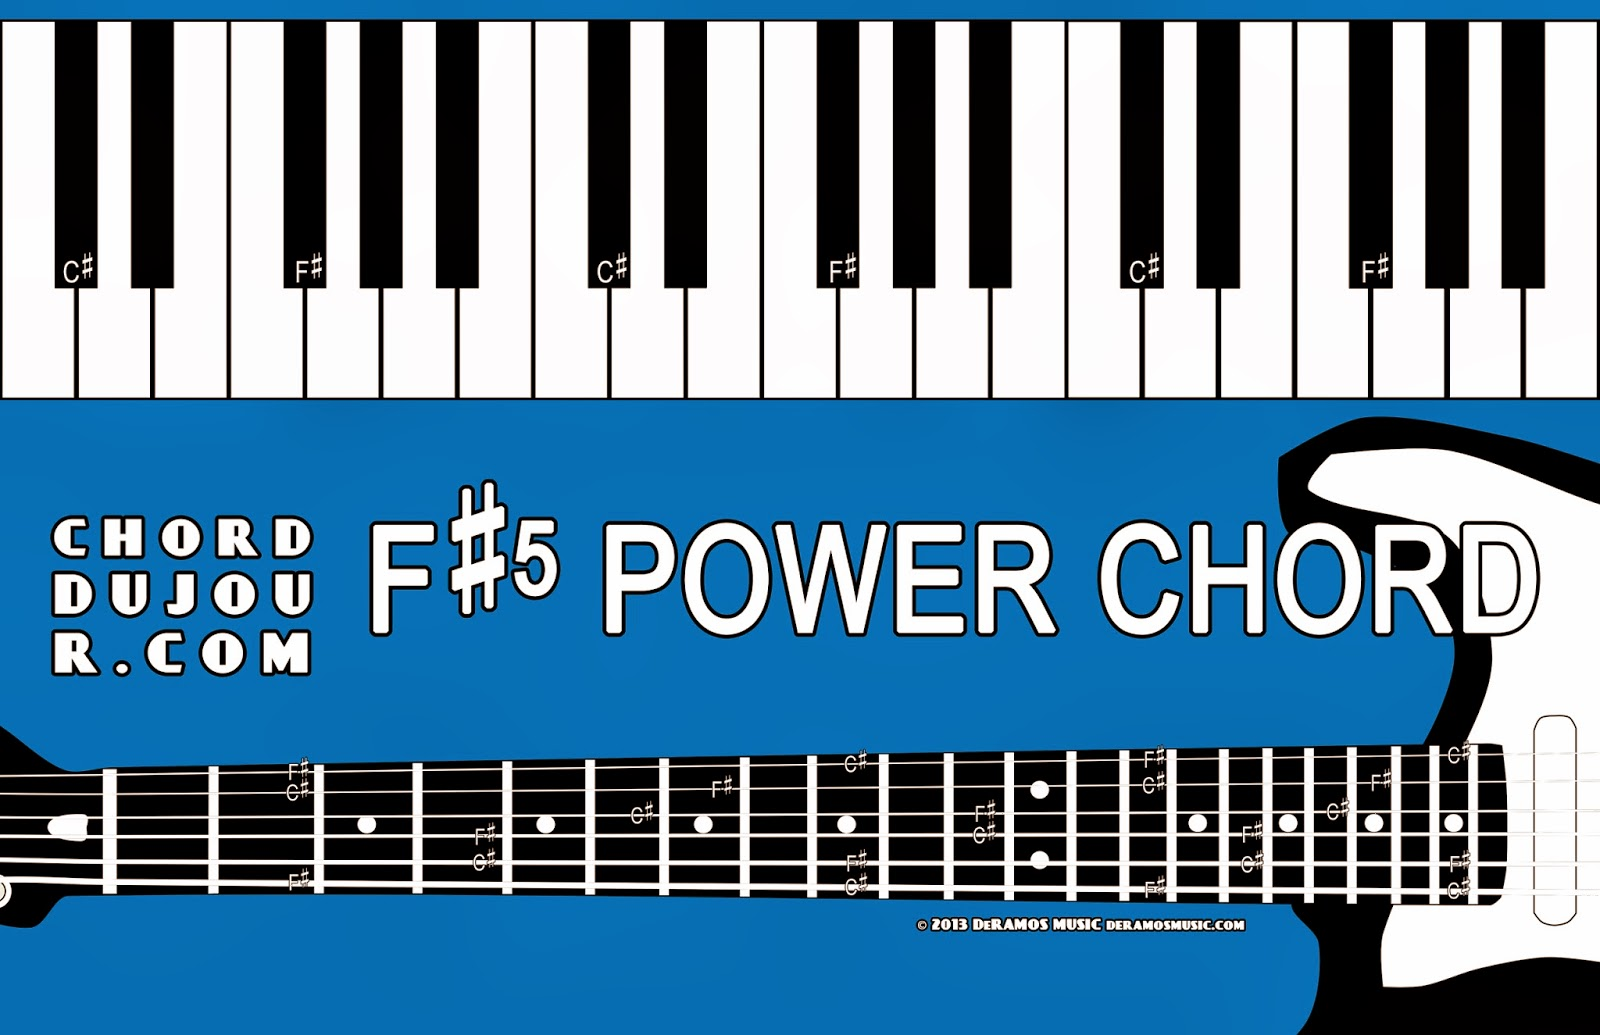 Chord du jour dictionary f5 power chord dictionary f5 power chord hexwebz Gallery